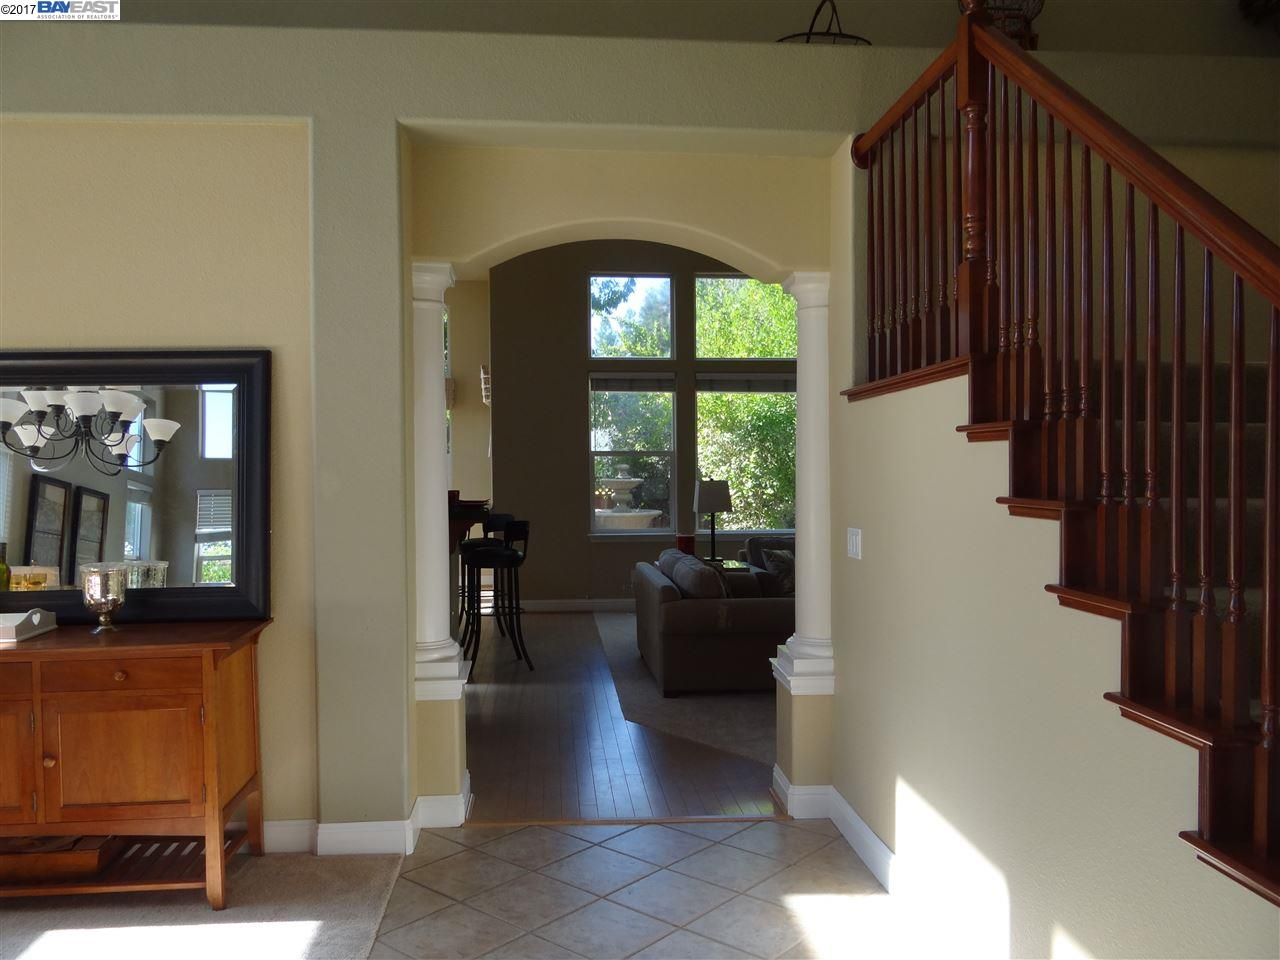 Additional photo for property listing at 481 Alden Lane  Livermore, カリフォルニア 94550 アメリカ合衆国